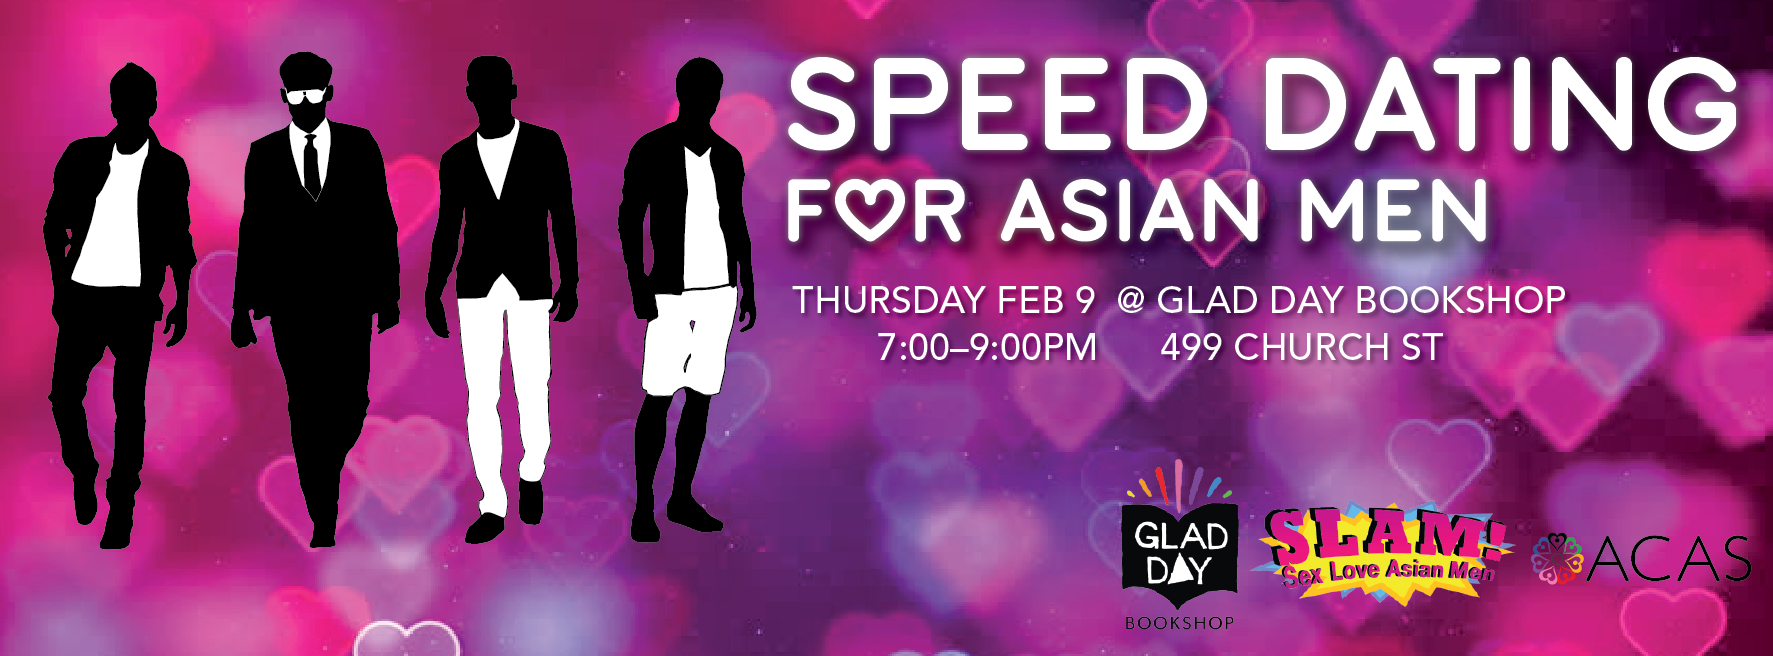 Asian speed dating vancouver